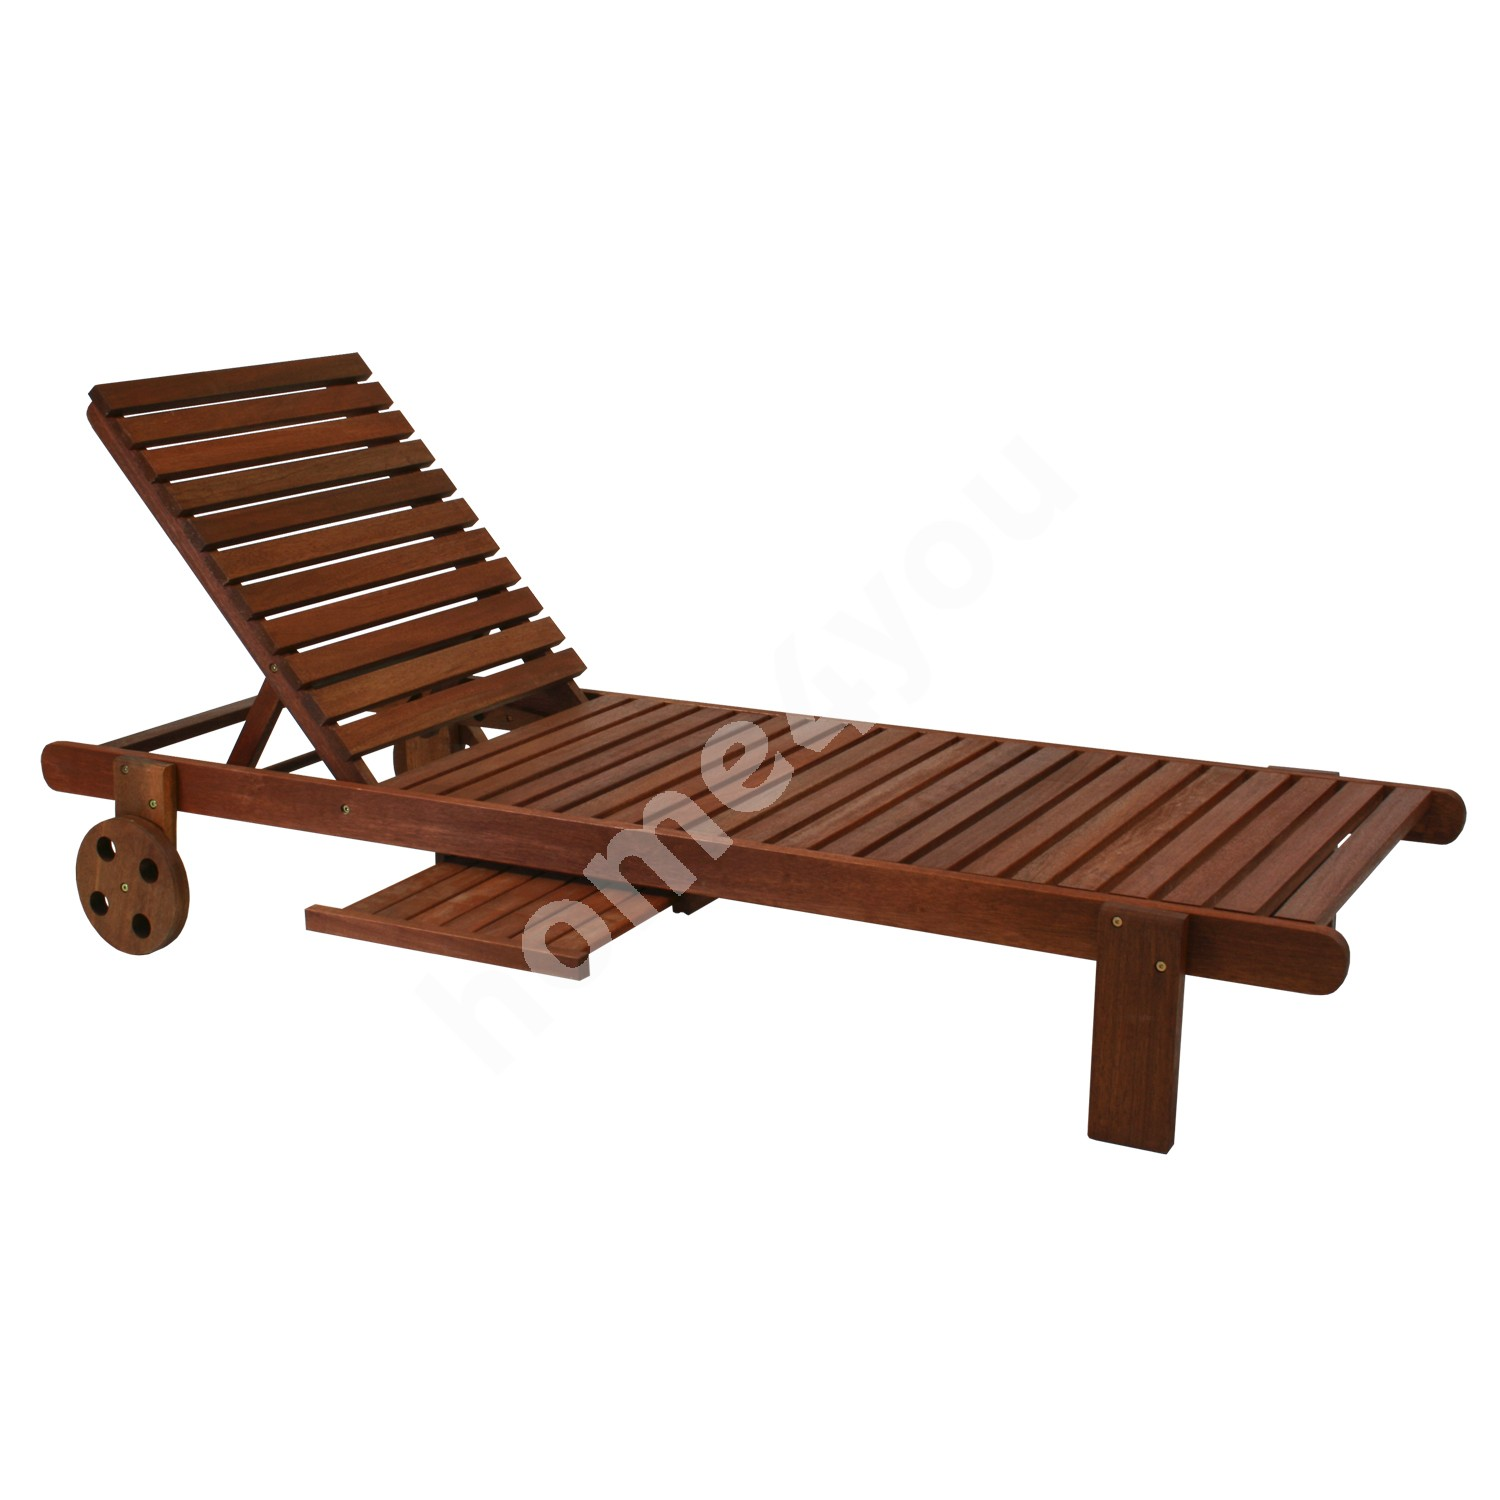 Deck chair MALAY with tray, 196x61xH80cm, wood: meranti, finish: oiled